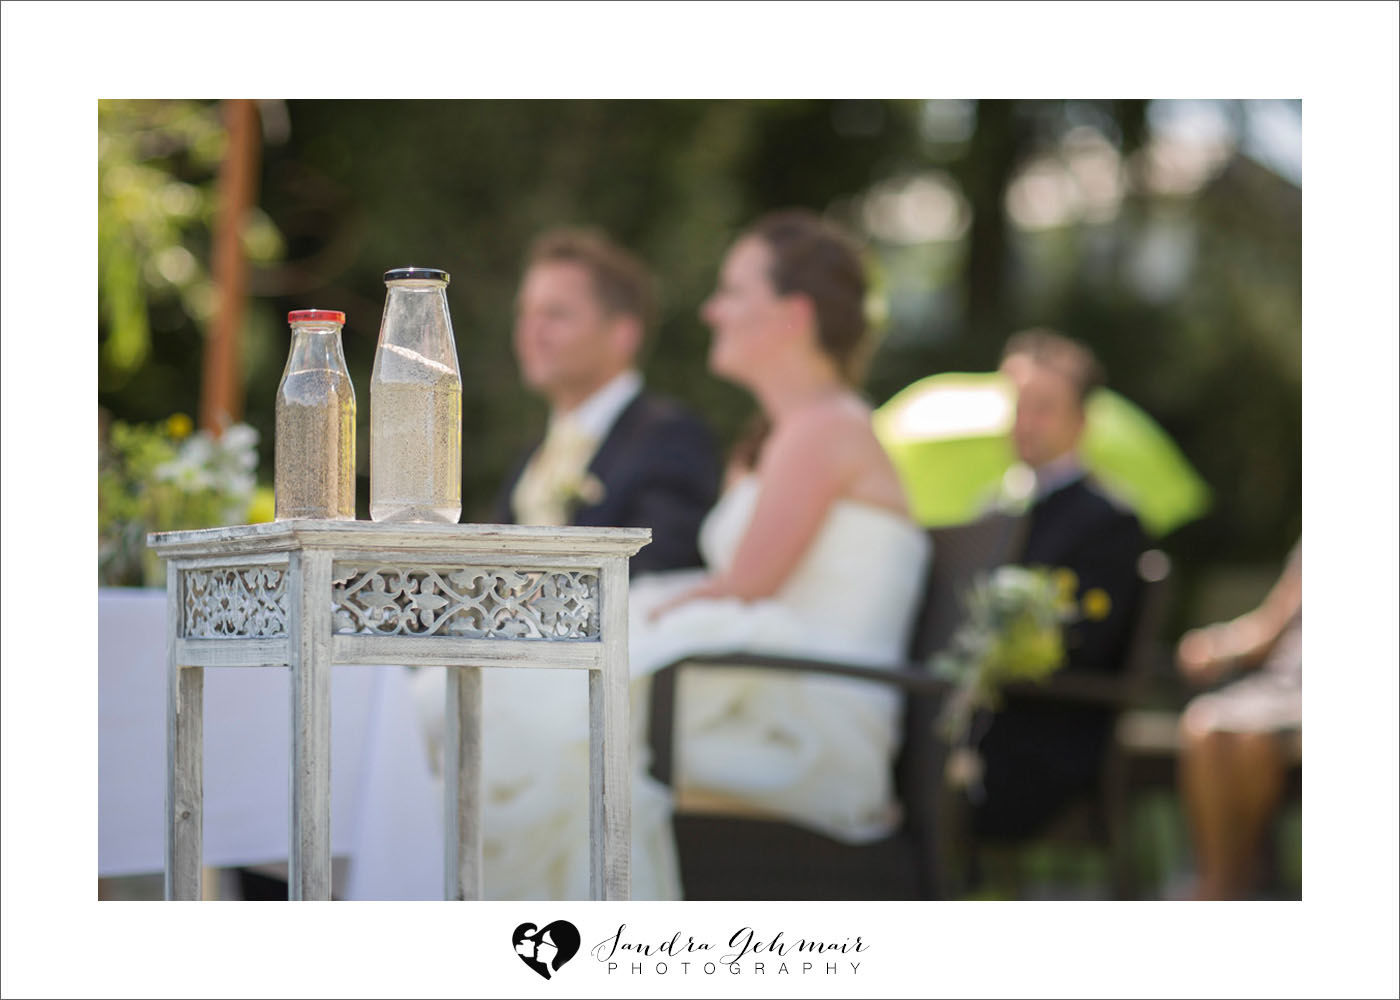 026_heiraten_am_see_spitzvilla_sandra_gehmair